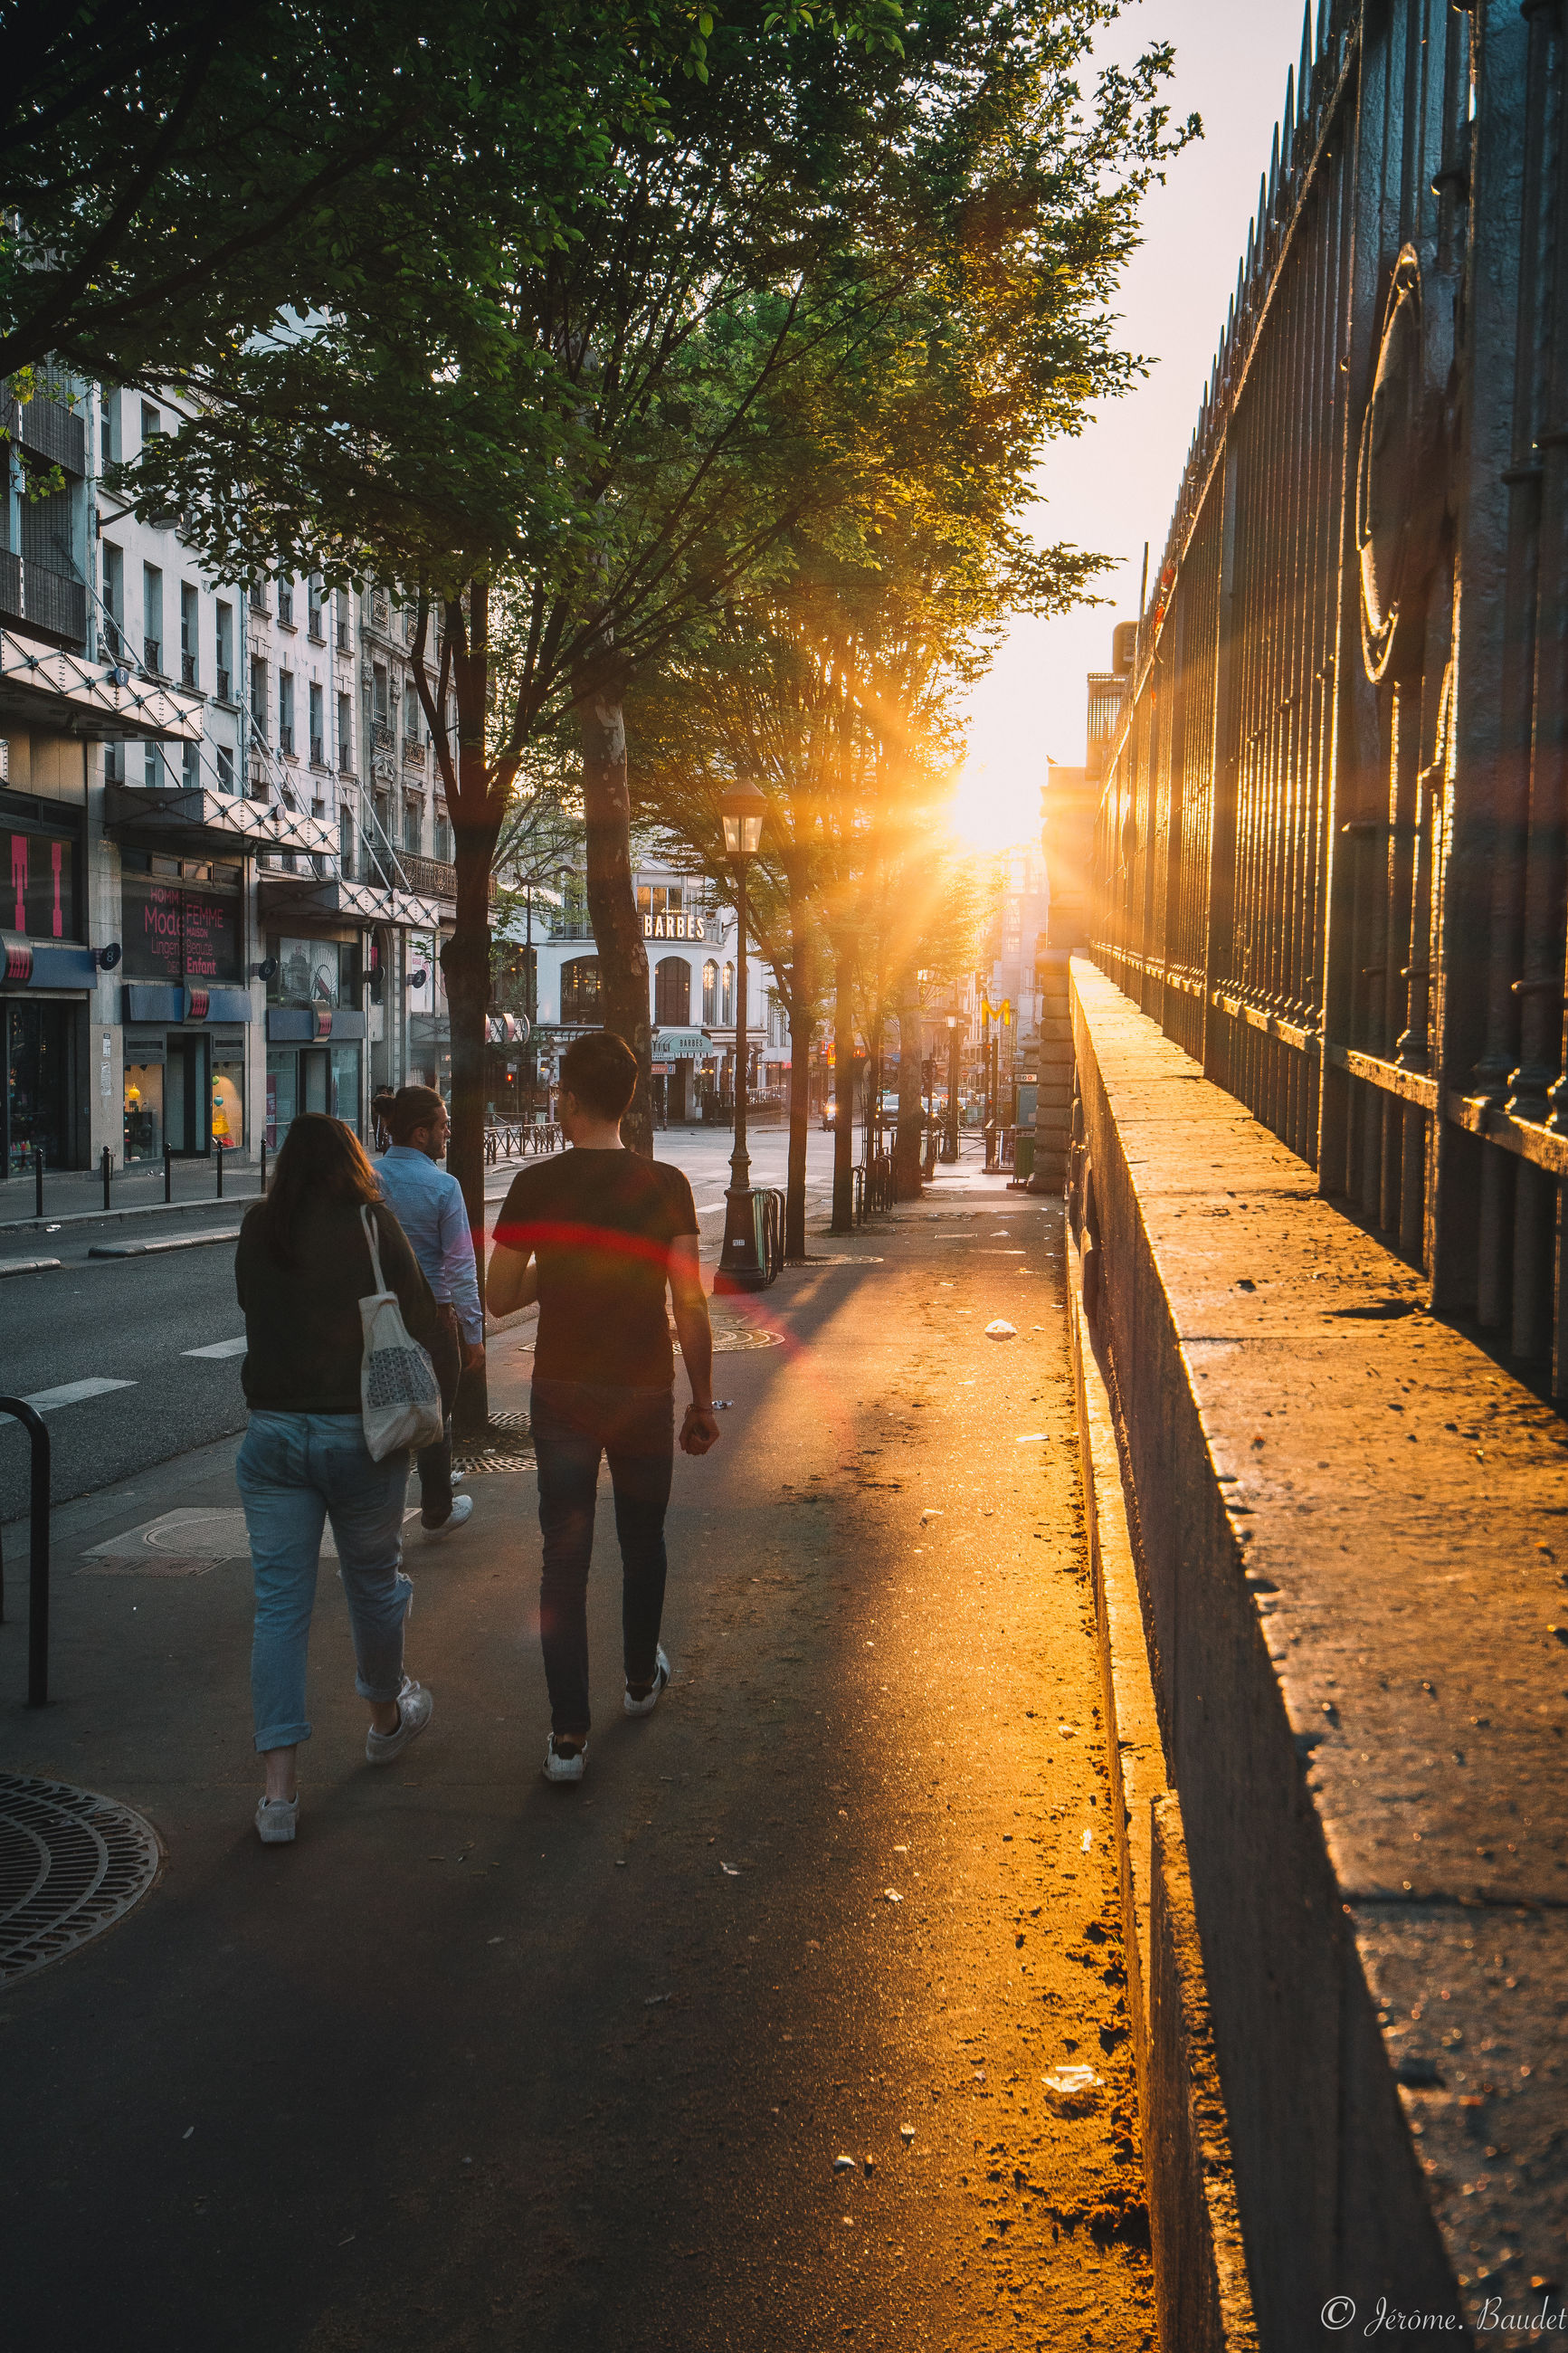 city, tree, street, rear view, direction, transportation, the way forward, real people, walking, architecture, building exterior, nature, plant, built structure, sunset, men, city life, footpath, women, sunlight, lens flare, outdoors, diminishing perspective